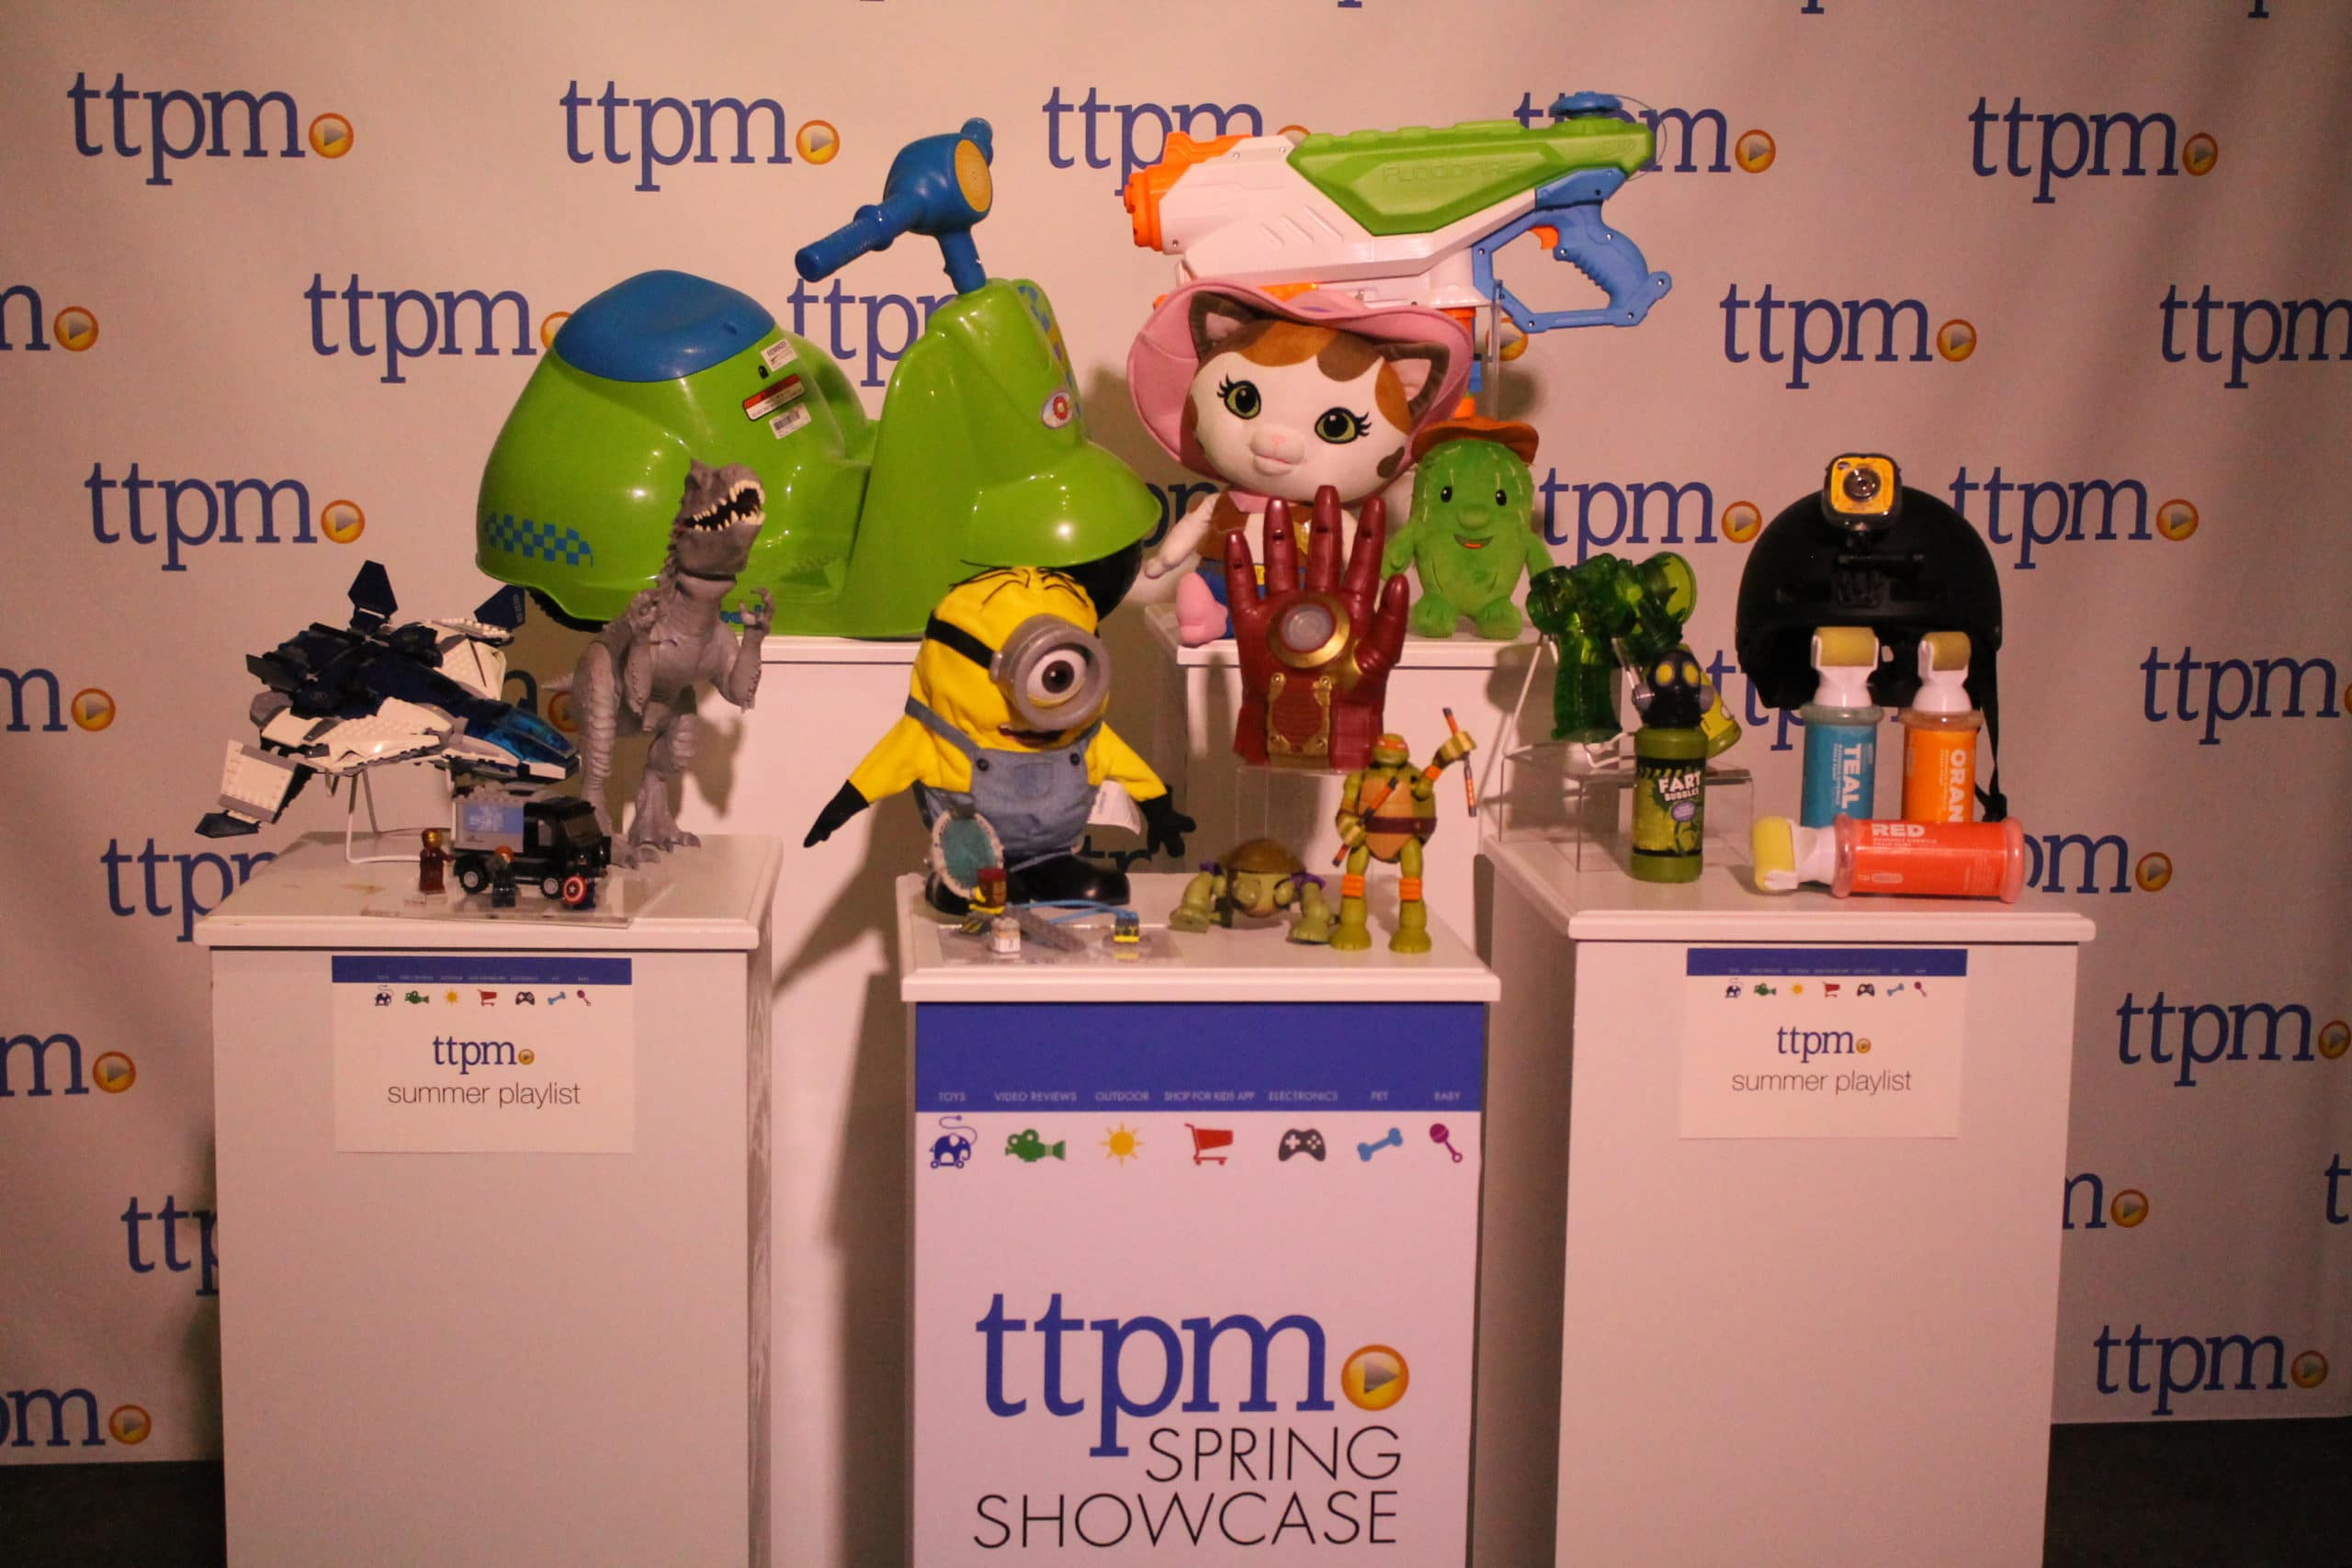 TTPM Spring Showcase Overview